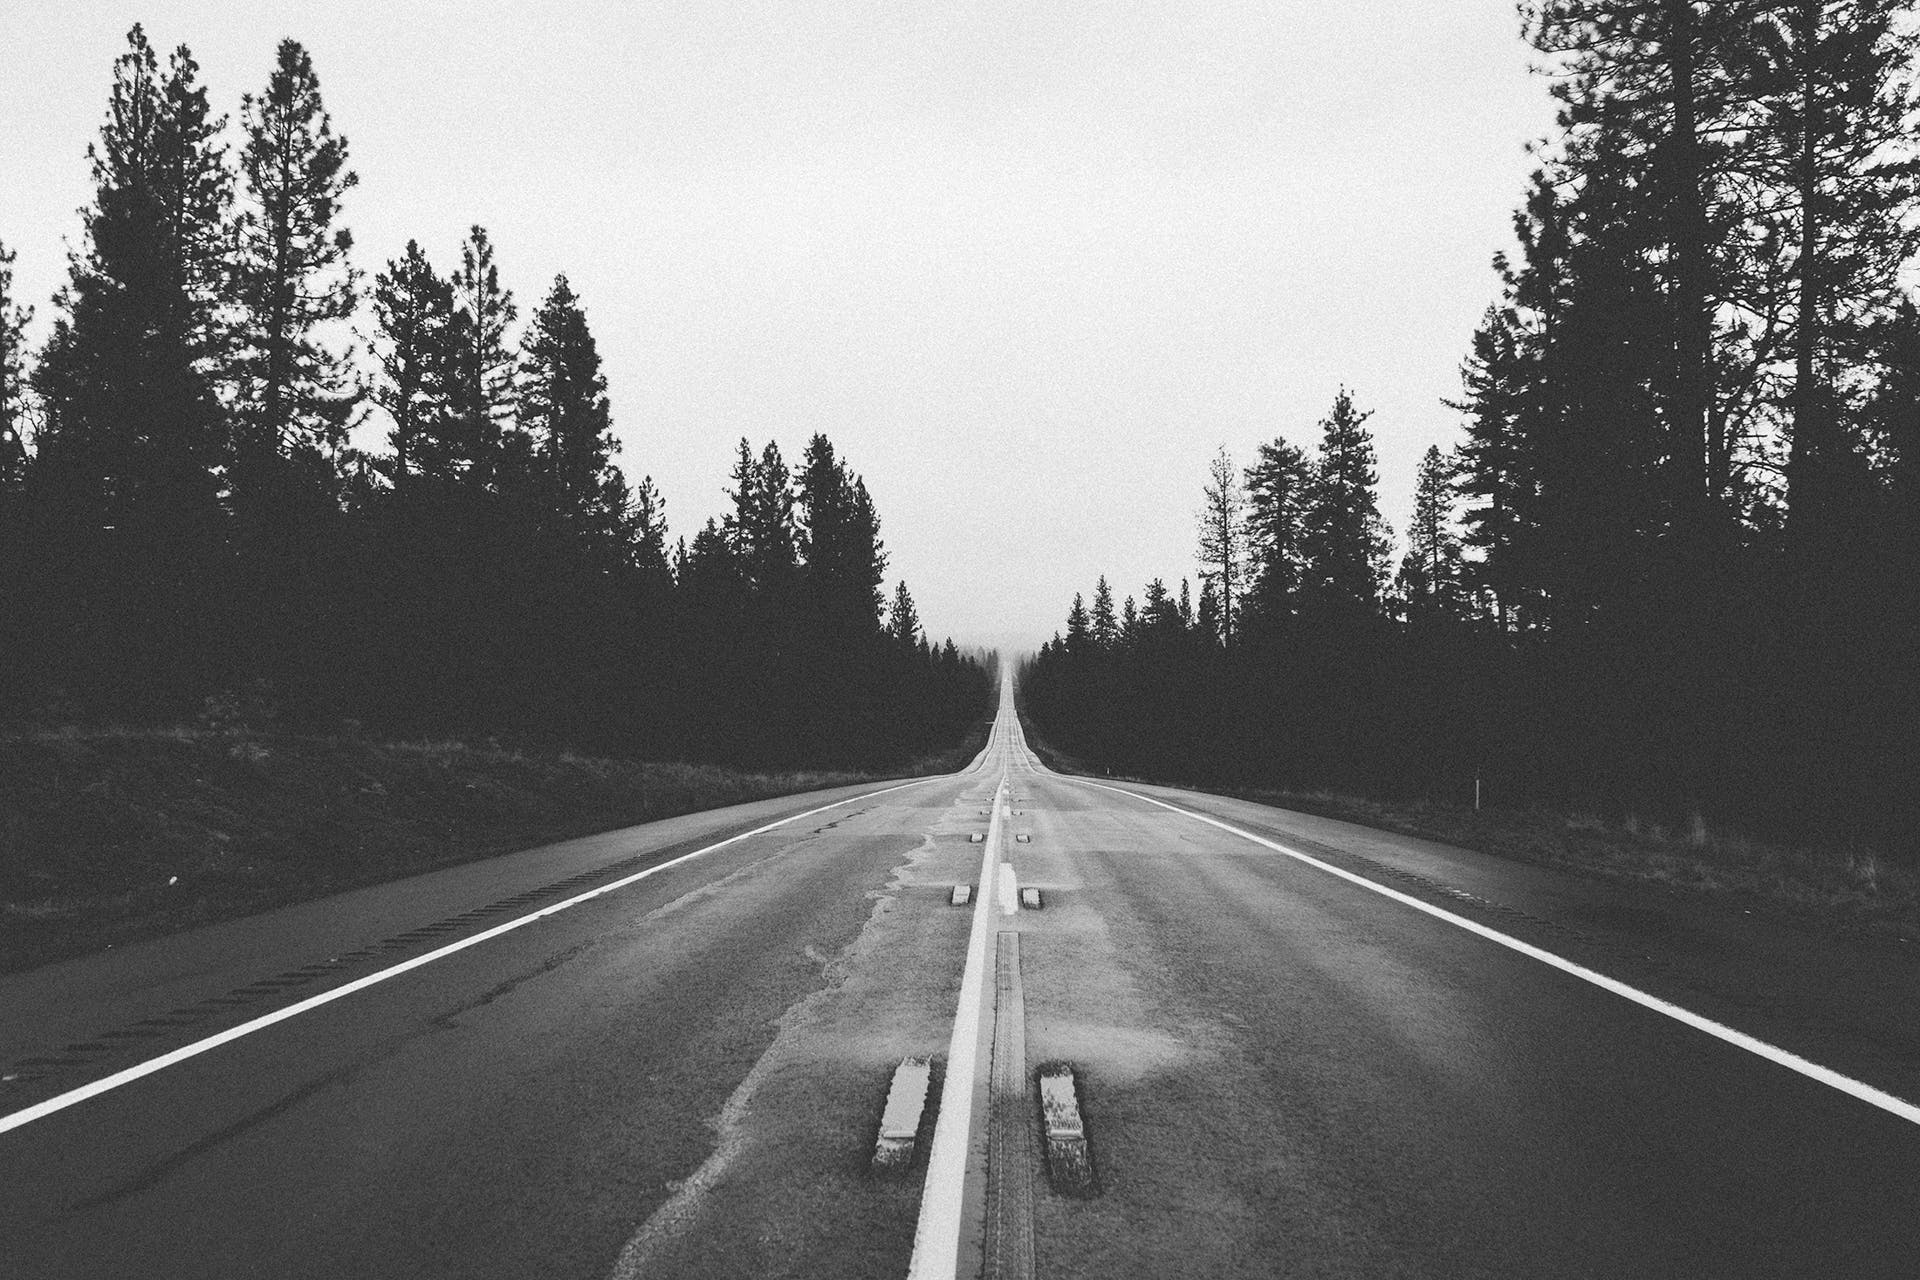 Free stock photo of road, endless, straight, long